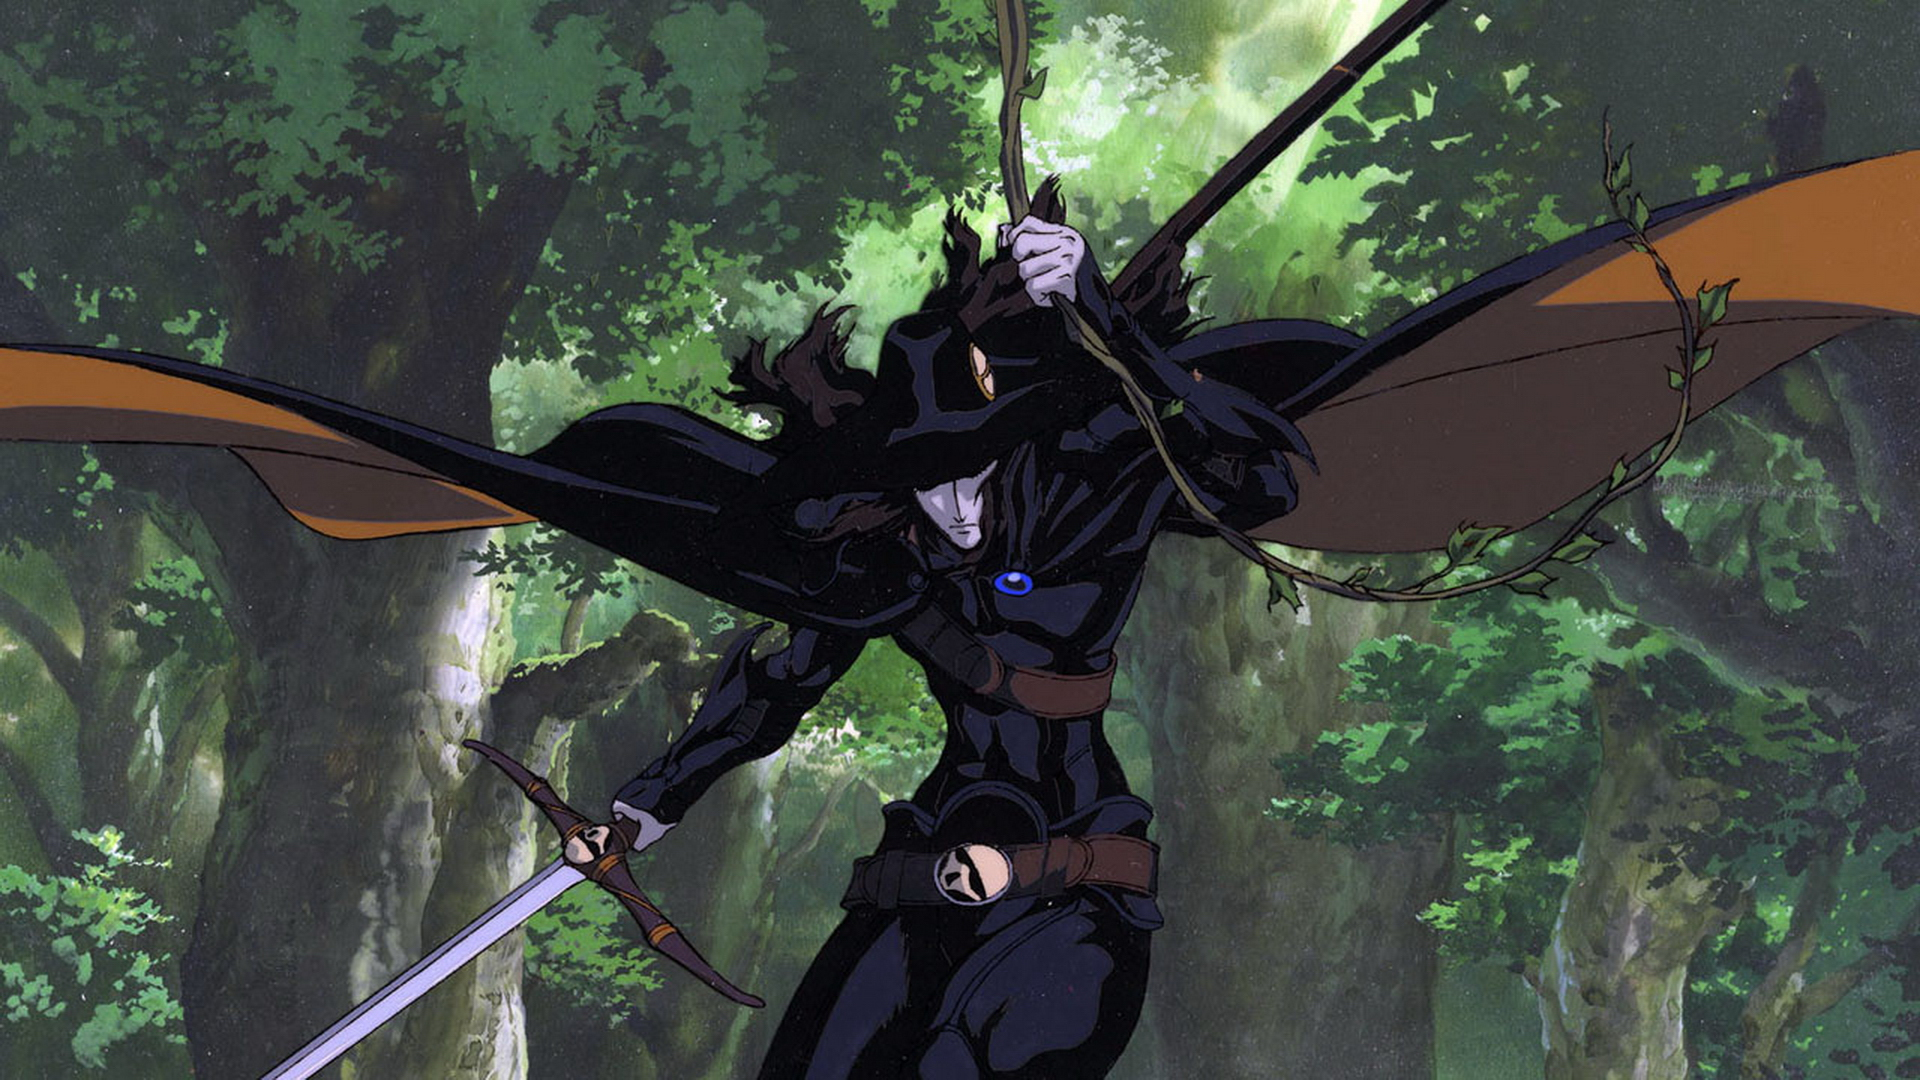 1920x1080 Vampire Hunter D Desktop Pc And Mac Wallpaper